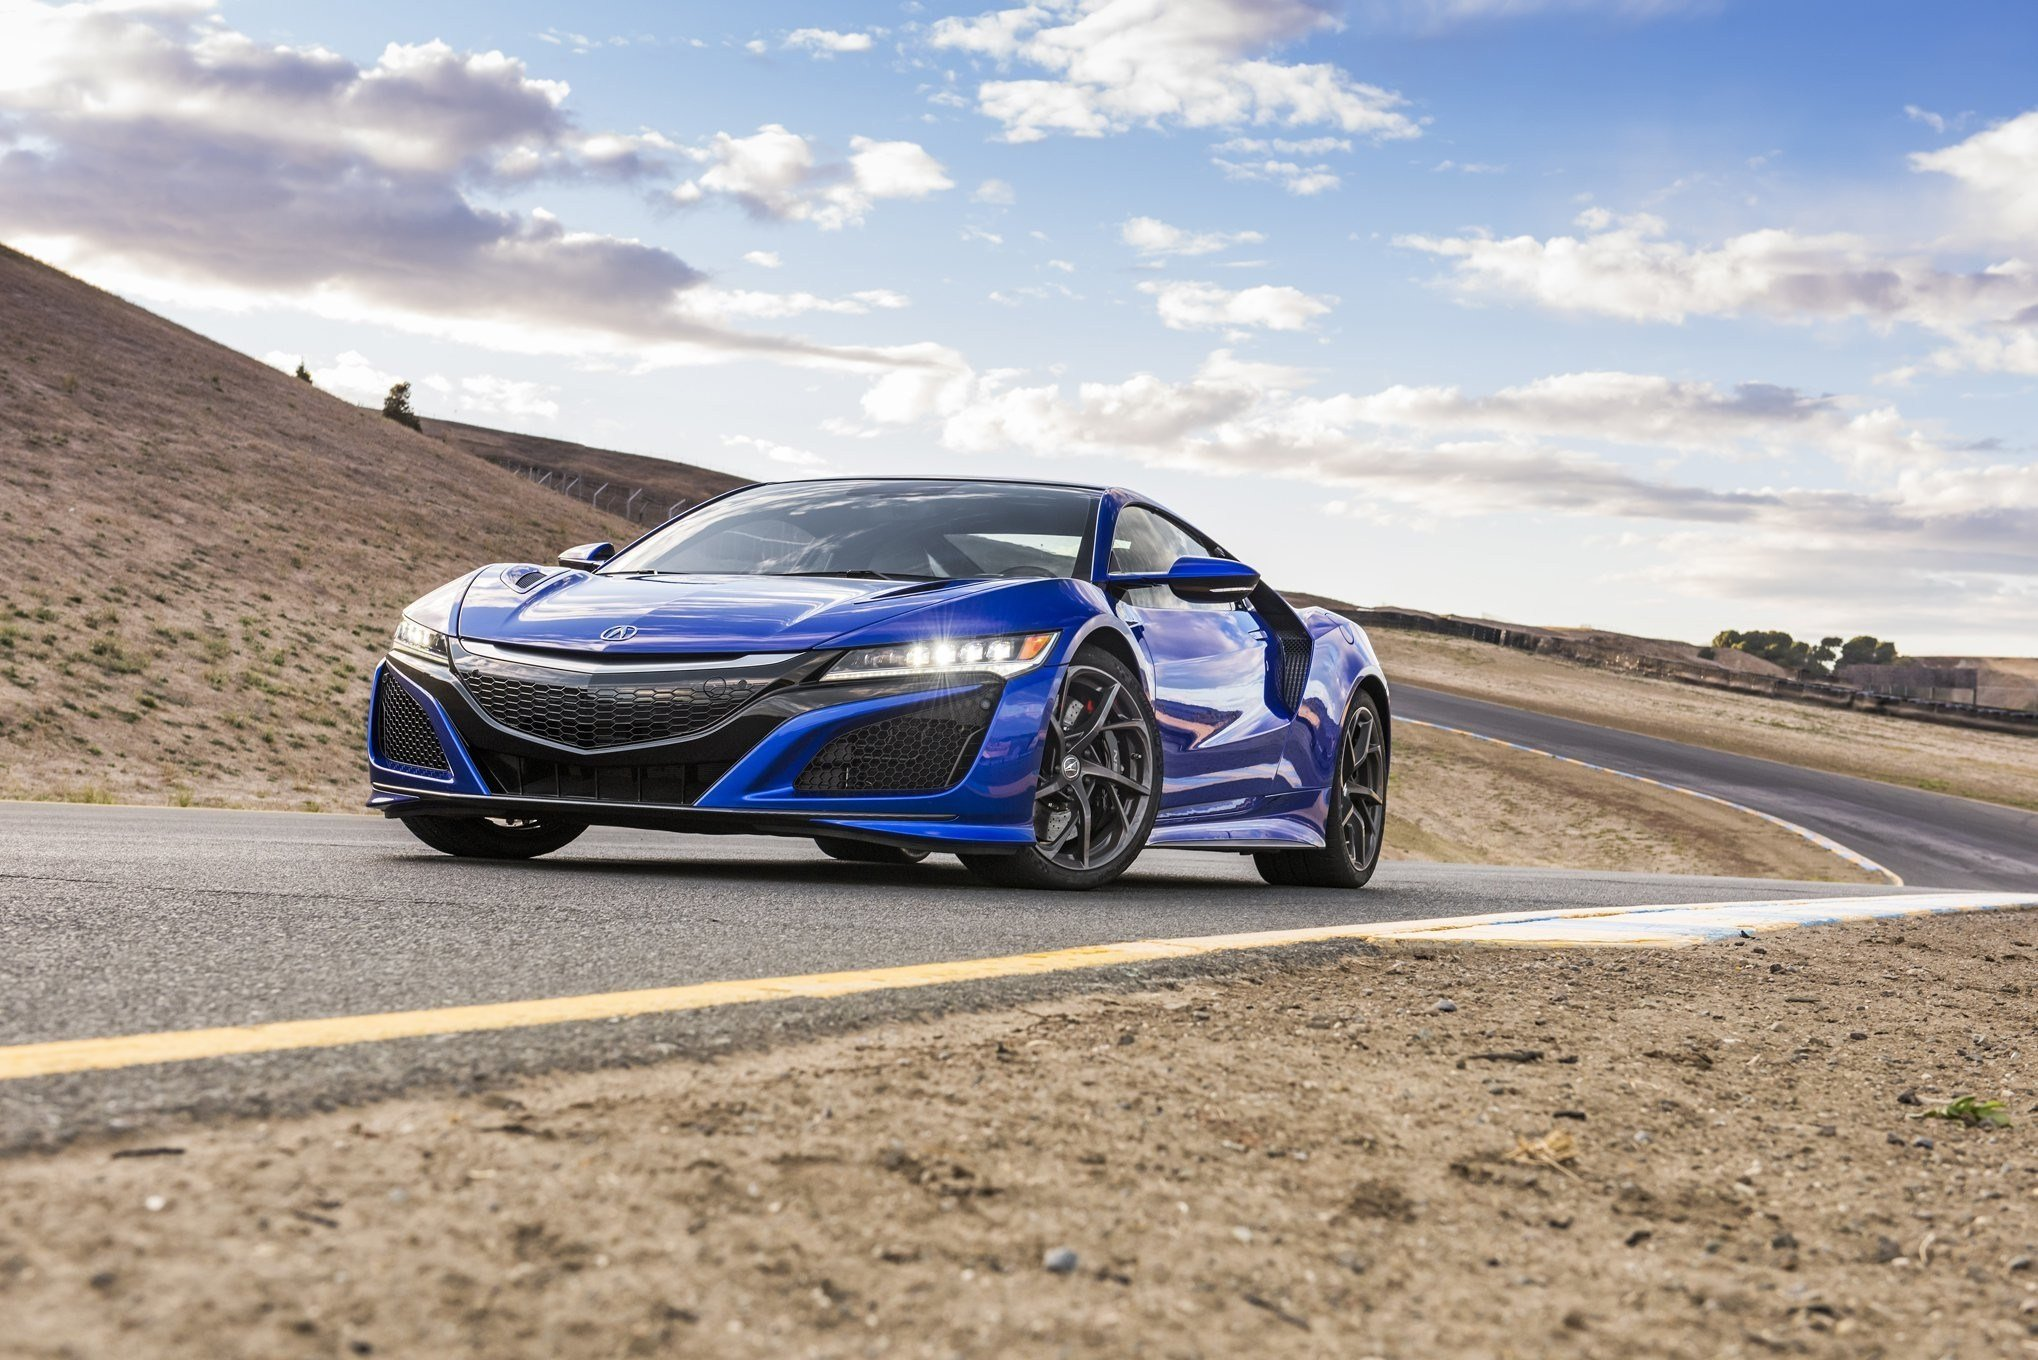 Latest 2018 Acura Nsx Wallpapers ·① Wallpapertag Free Download